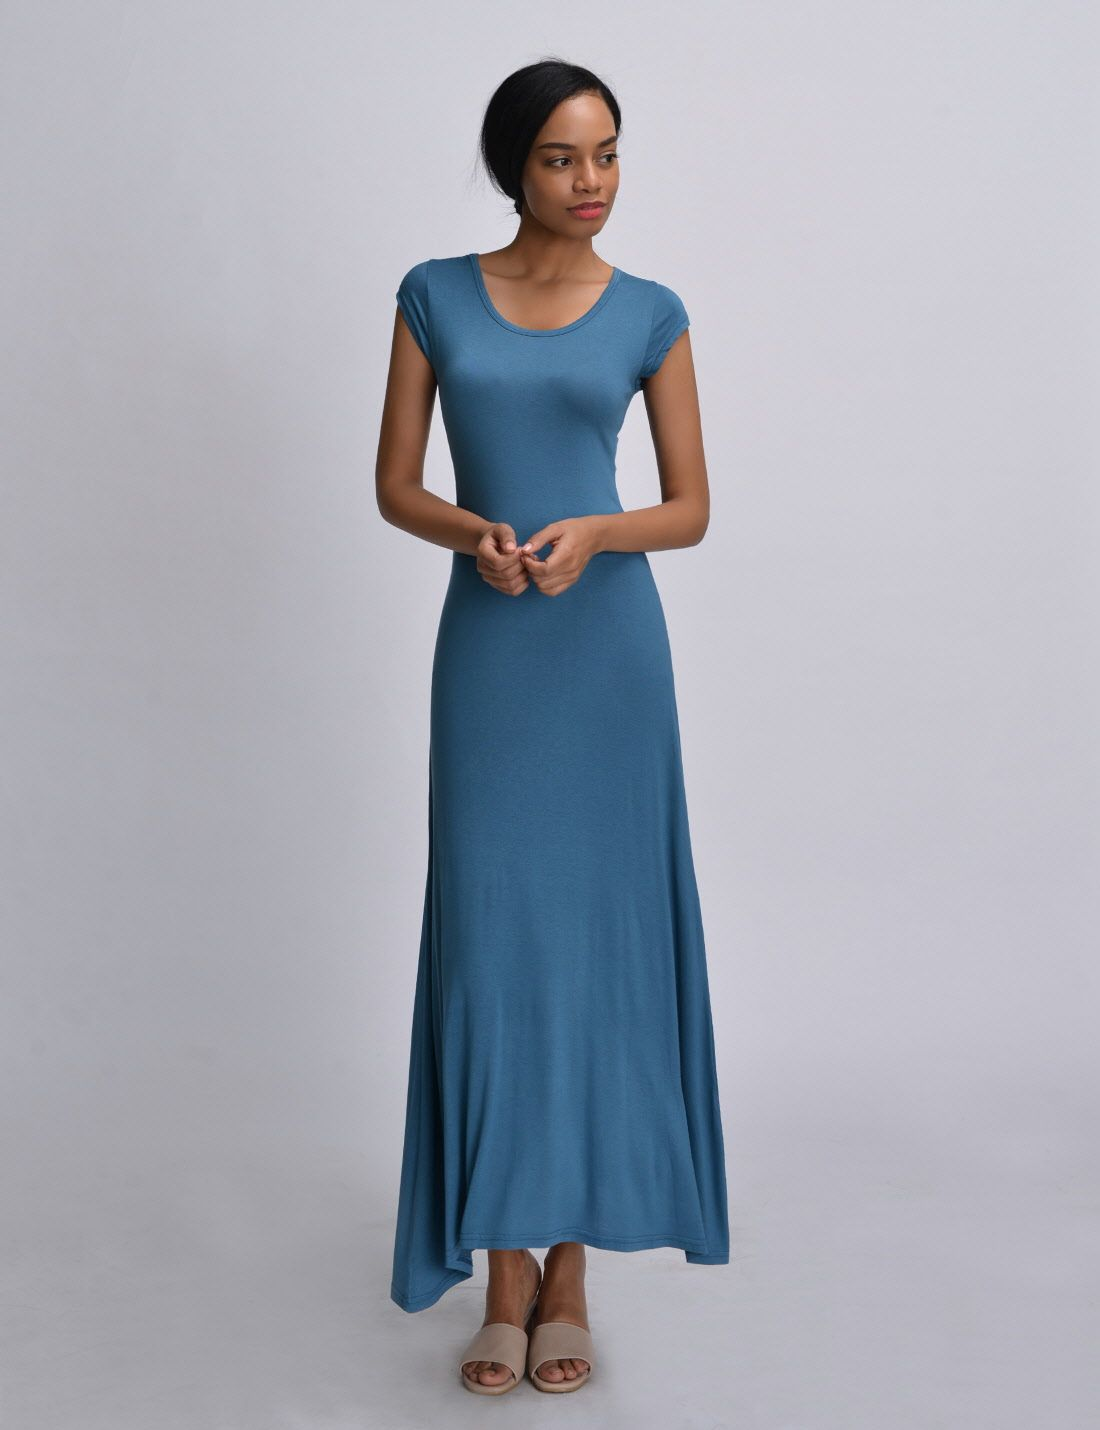 fitted maxi dress casual